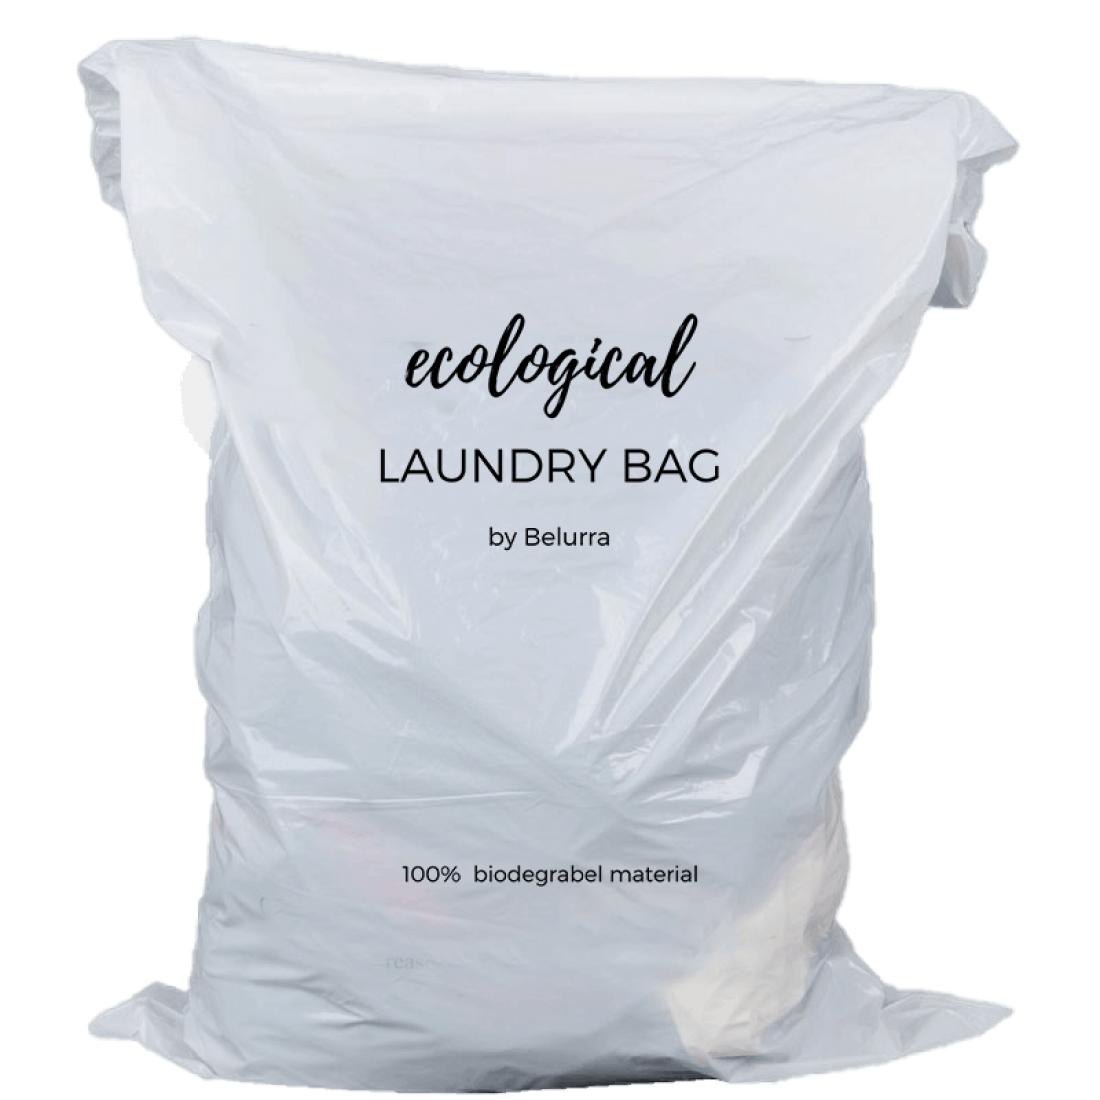 PLA-Laundry-Bag_Belurra.png